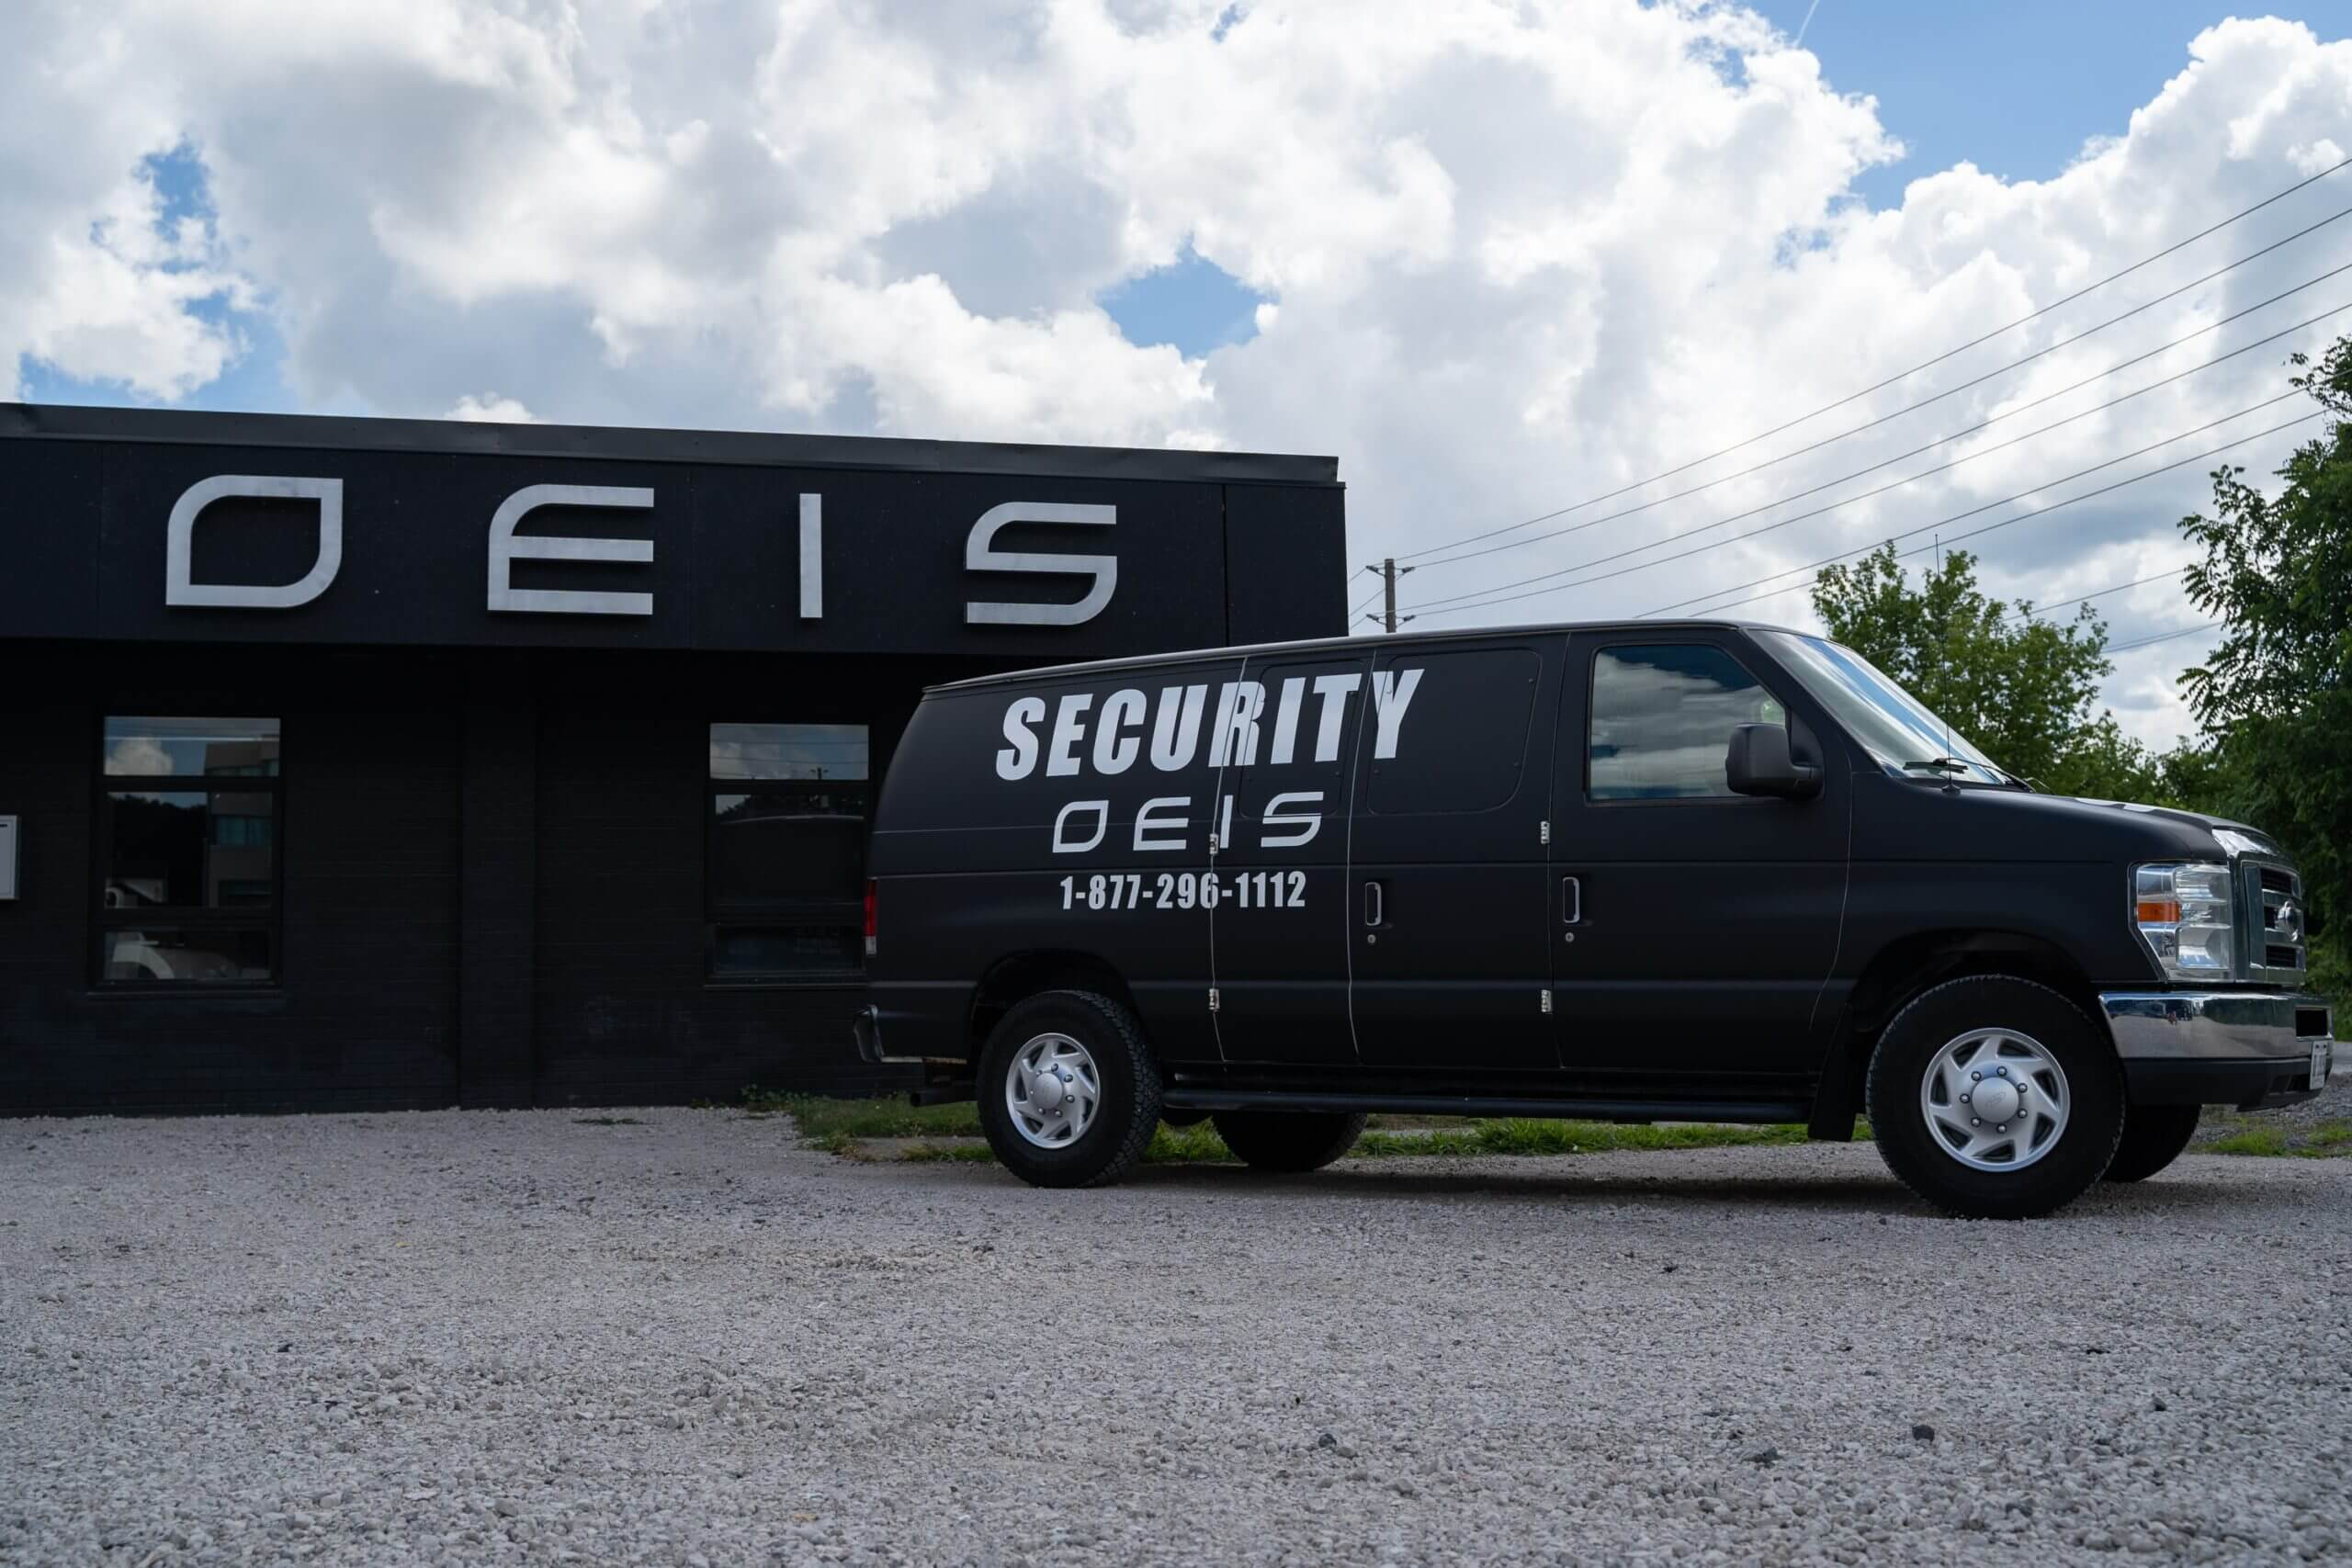 Security Cars